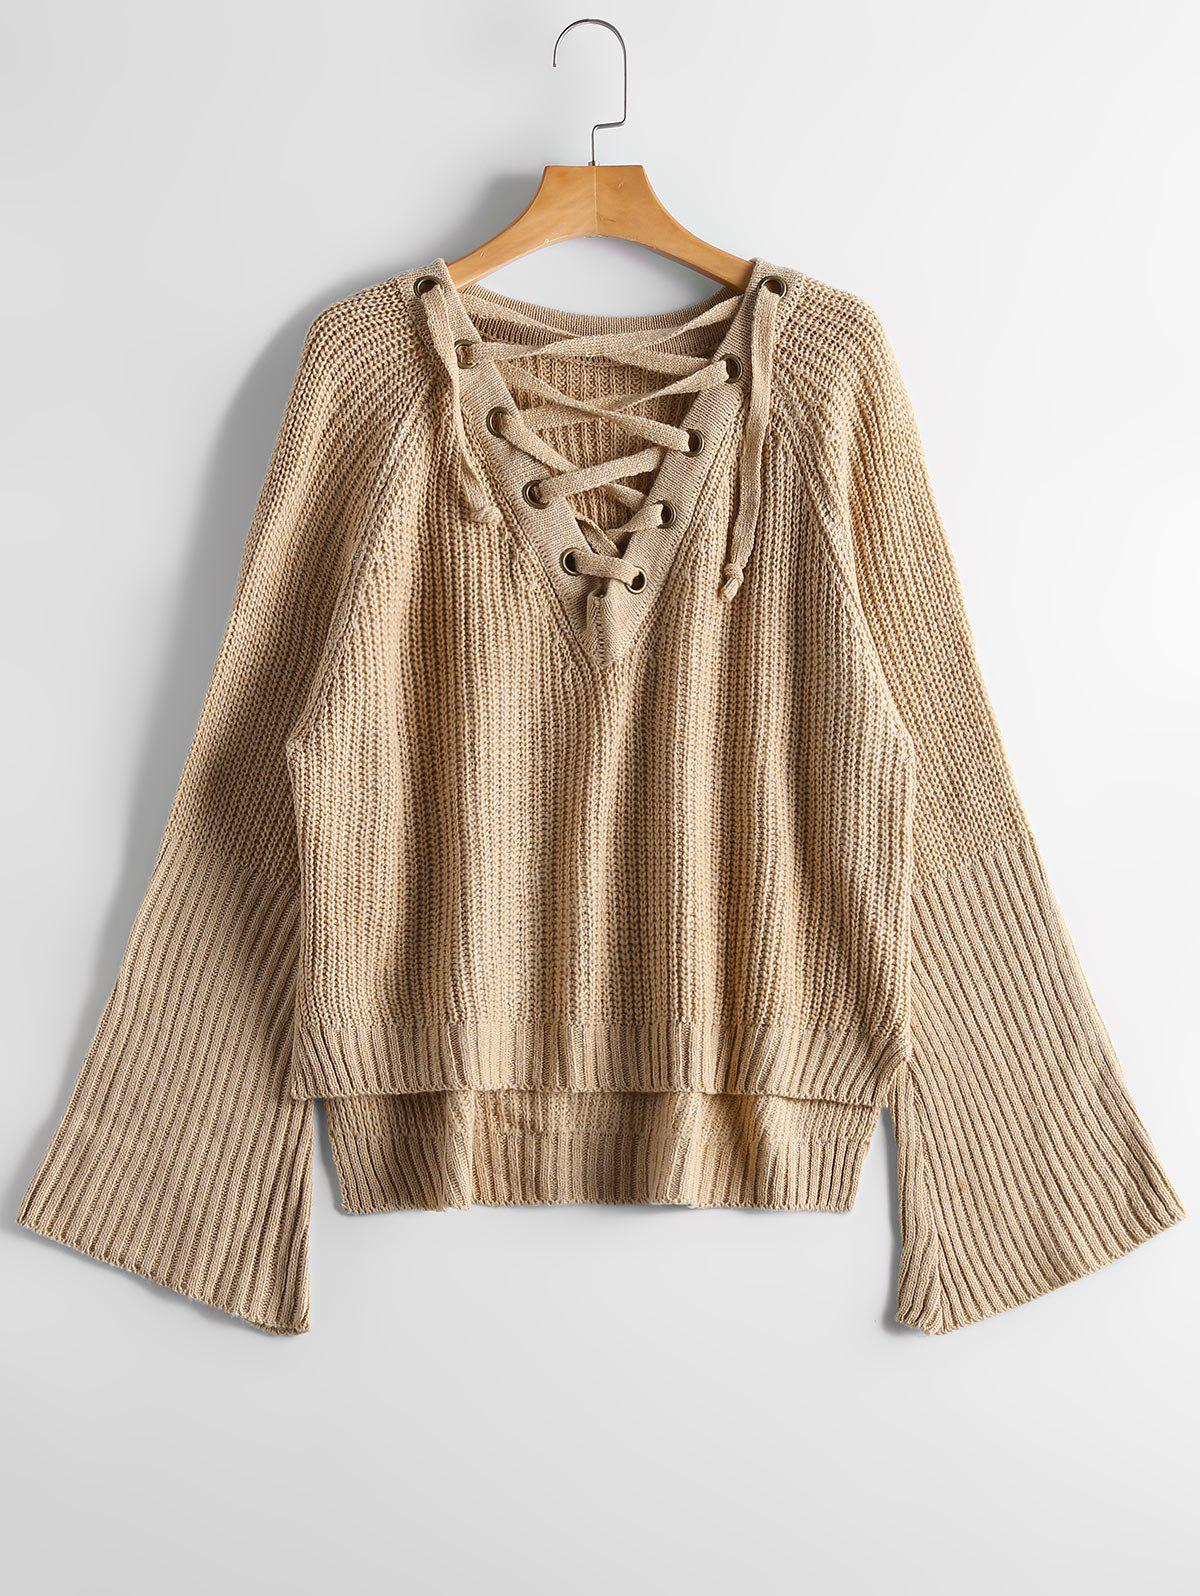 High Low Lace Up Flare Sleeve SweaterWOMEN<br><br>Size: ONE SIZE; Color: CAMEL; Type: Pullovers; Material: Polyester,Spandex; Sleeve Length: Full; Collar: V-Neck; Style: Fashion; Pattern Type: Solid; Season: Fall,Winter; Weight: 0.4700kg; Package Contents: 1 x Sweater;